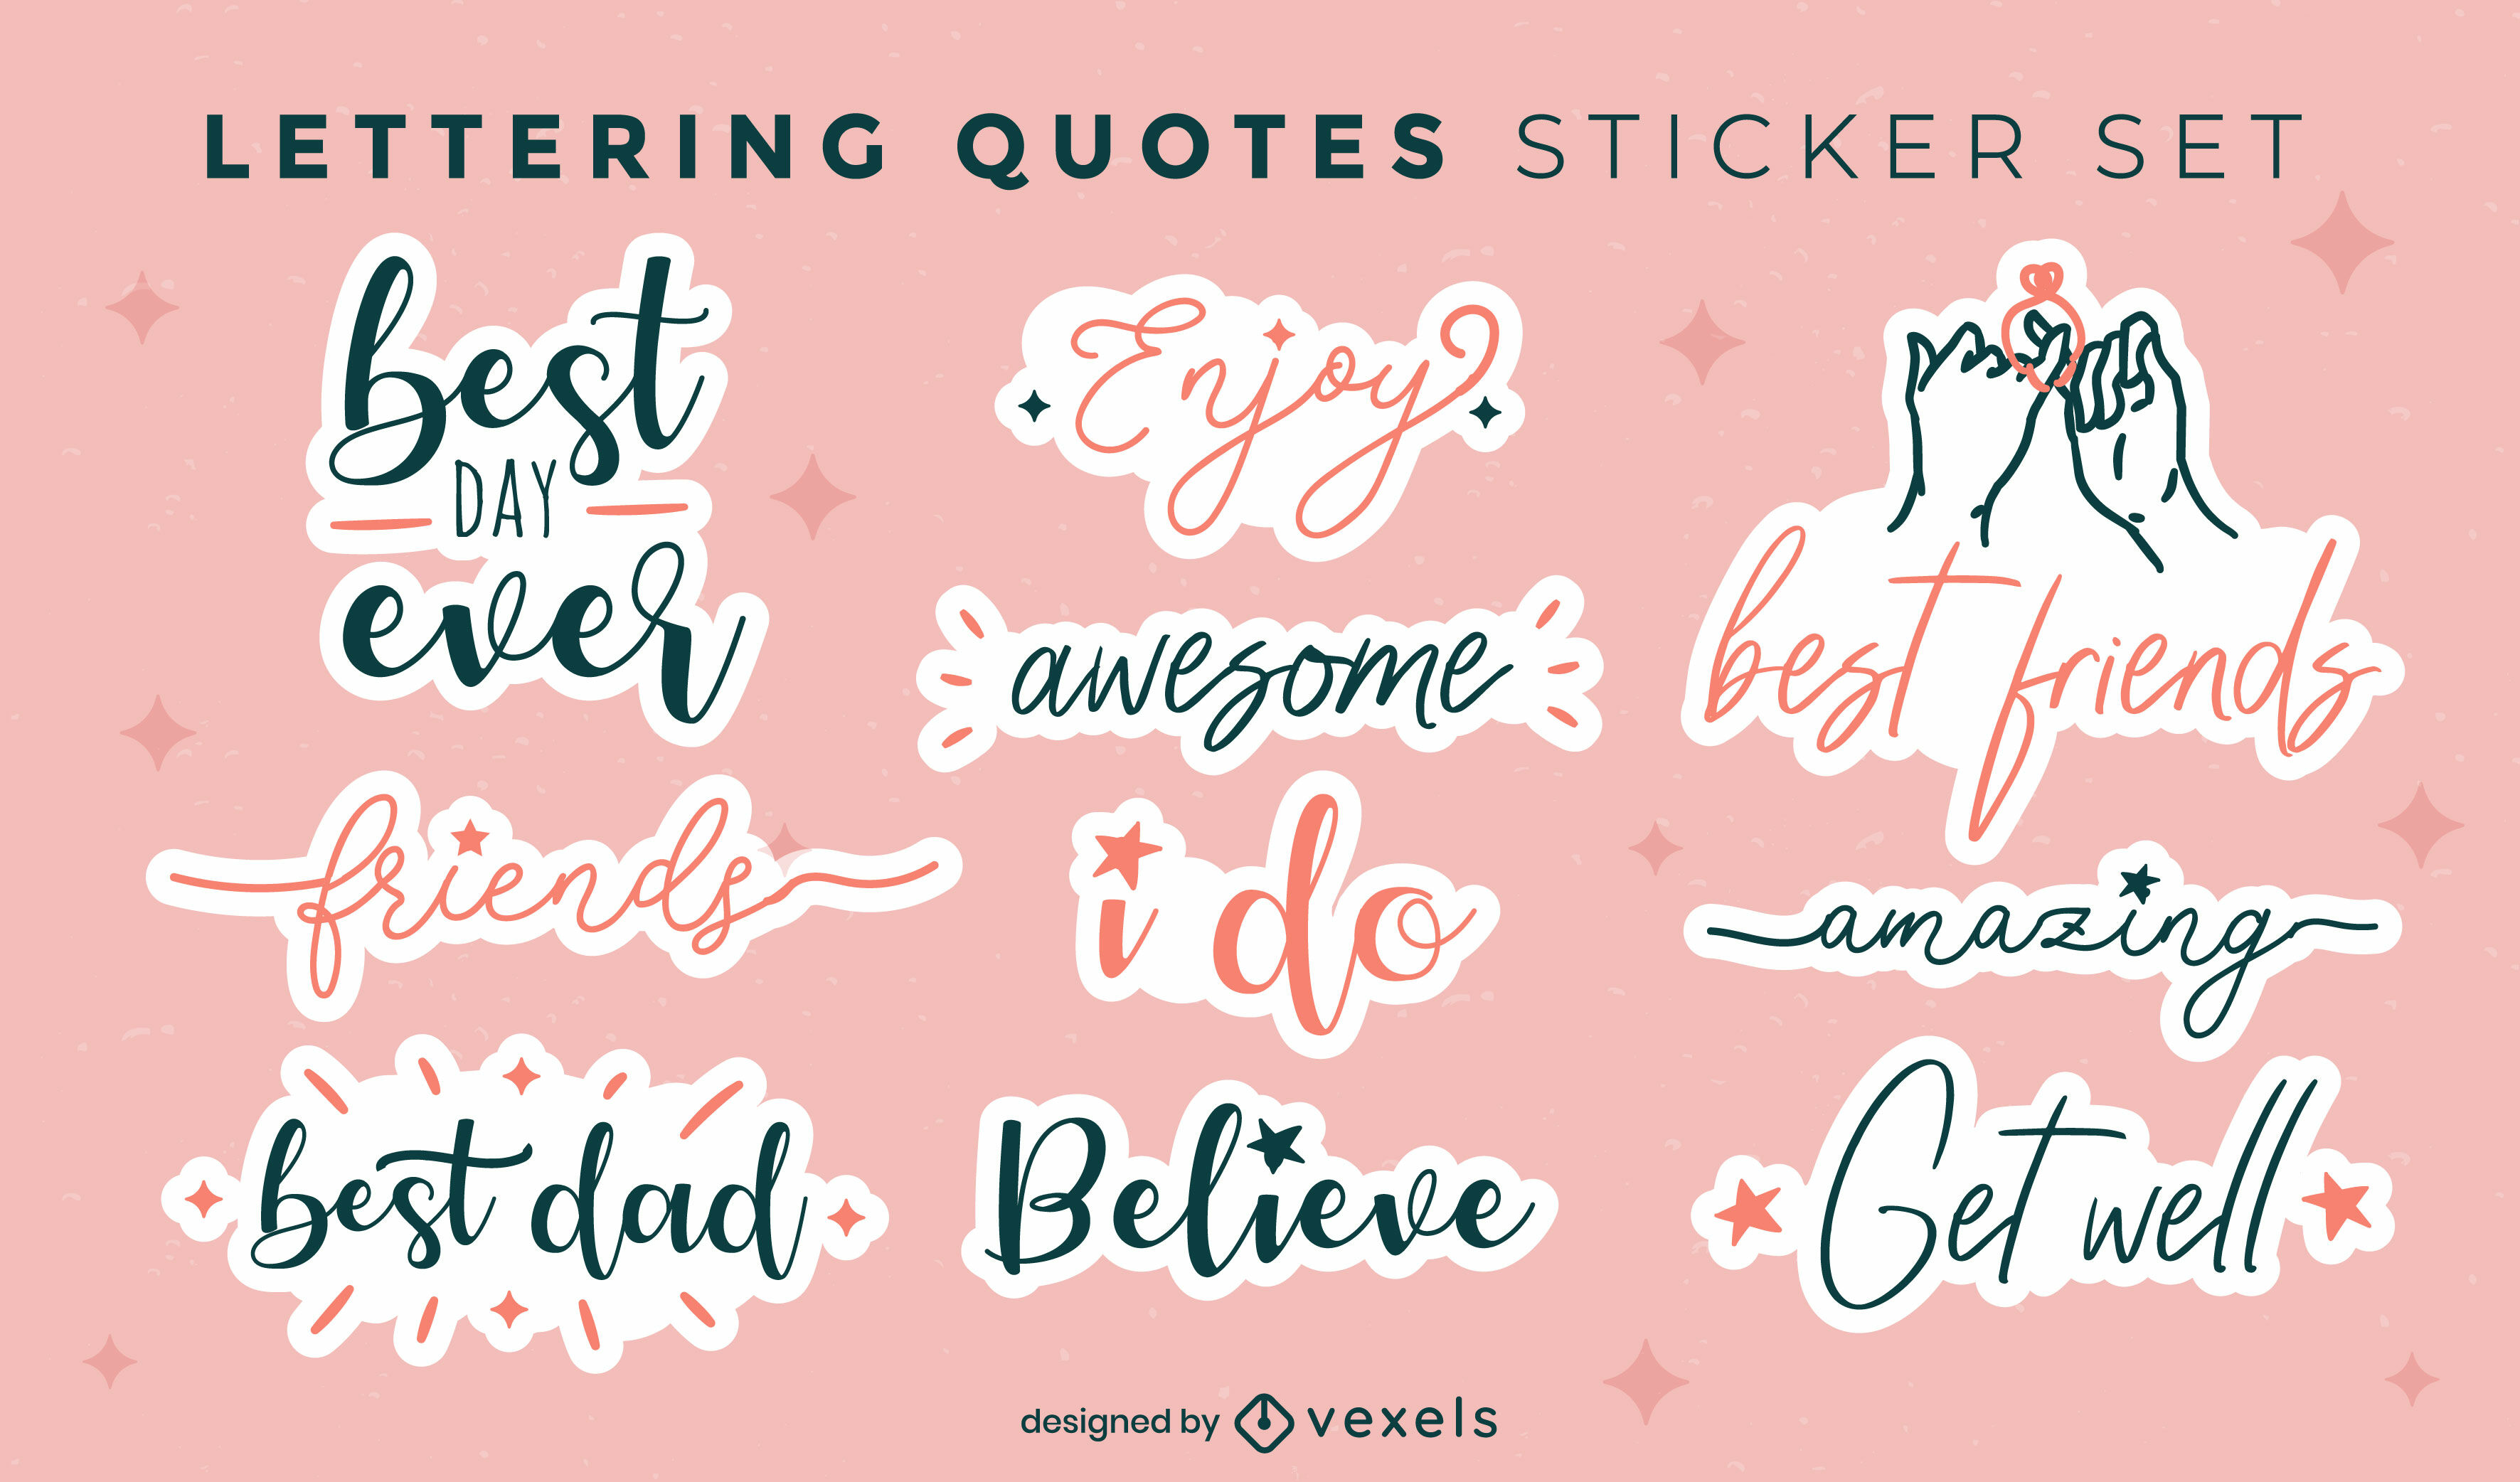 Lettering positive quotes stickers set